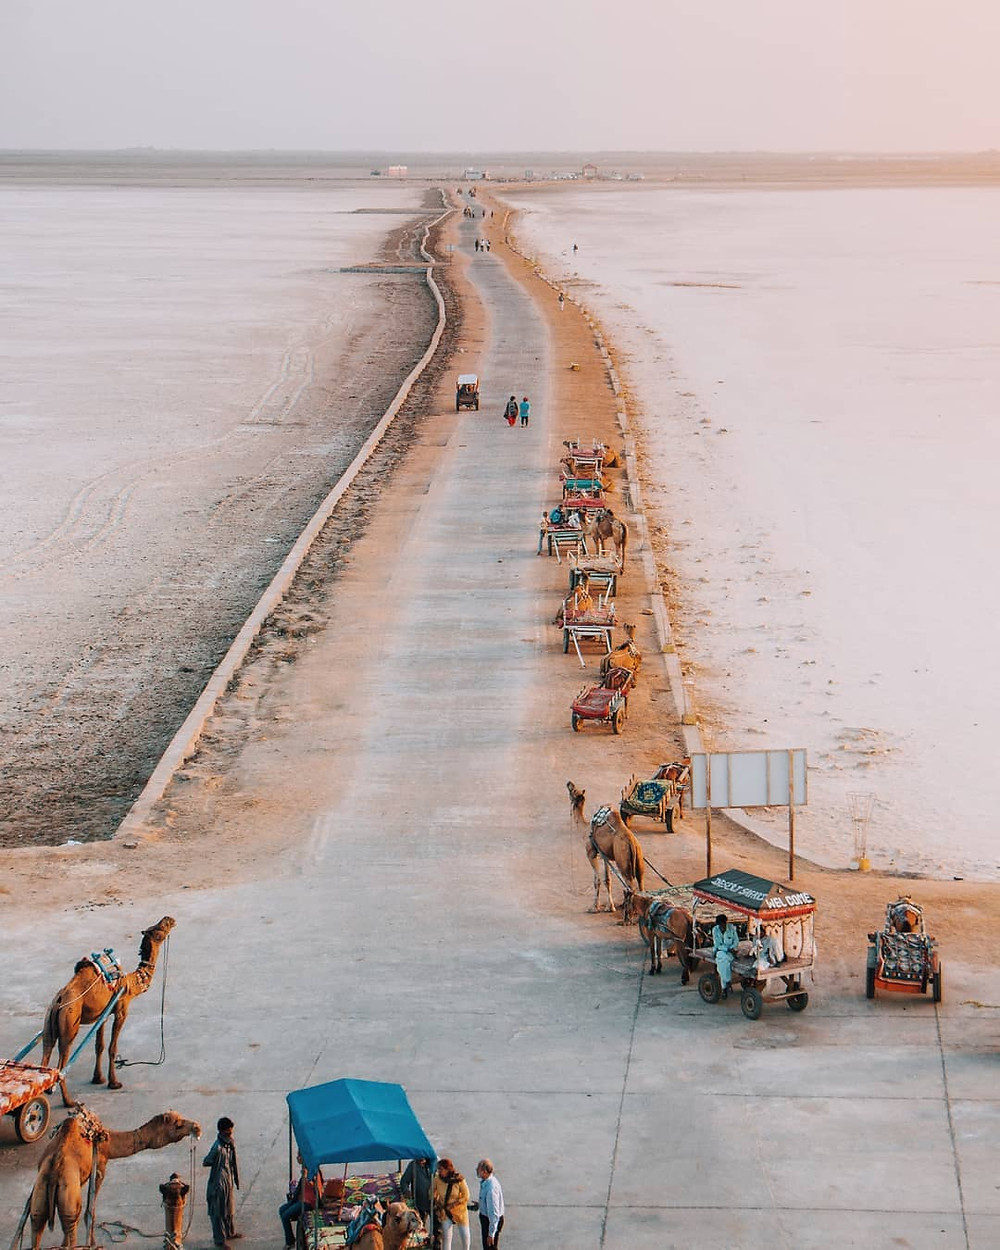 The incredible view of Rann of Kutch.